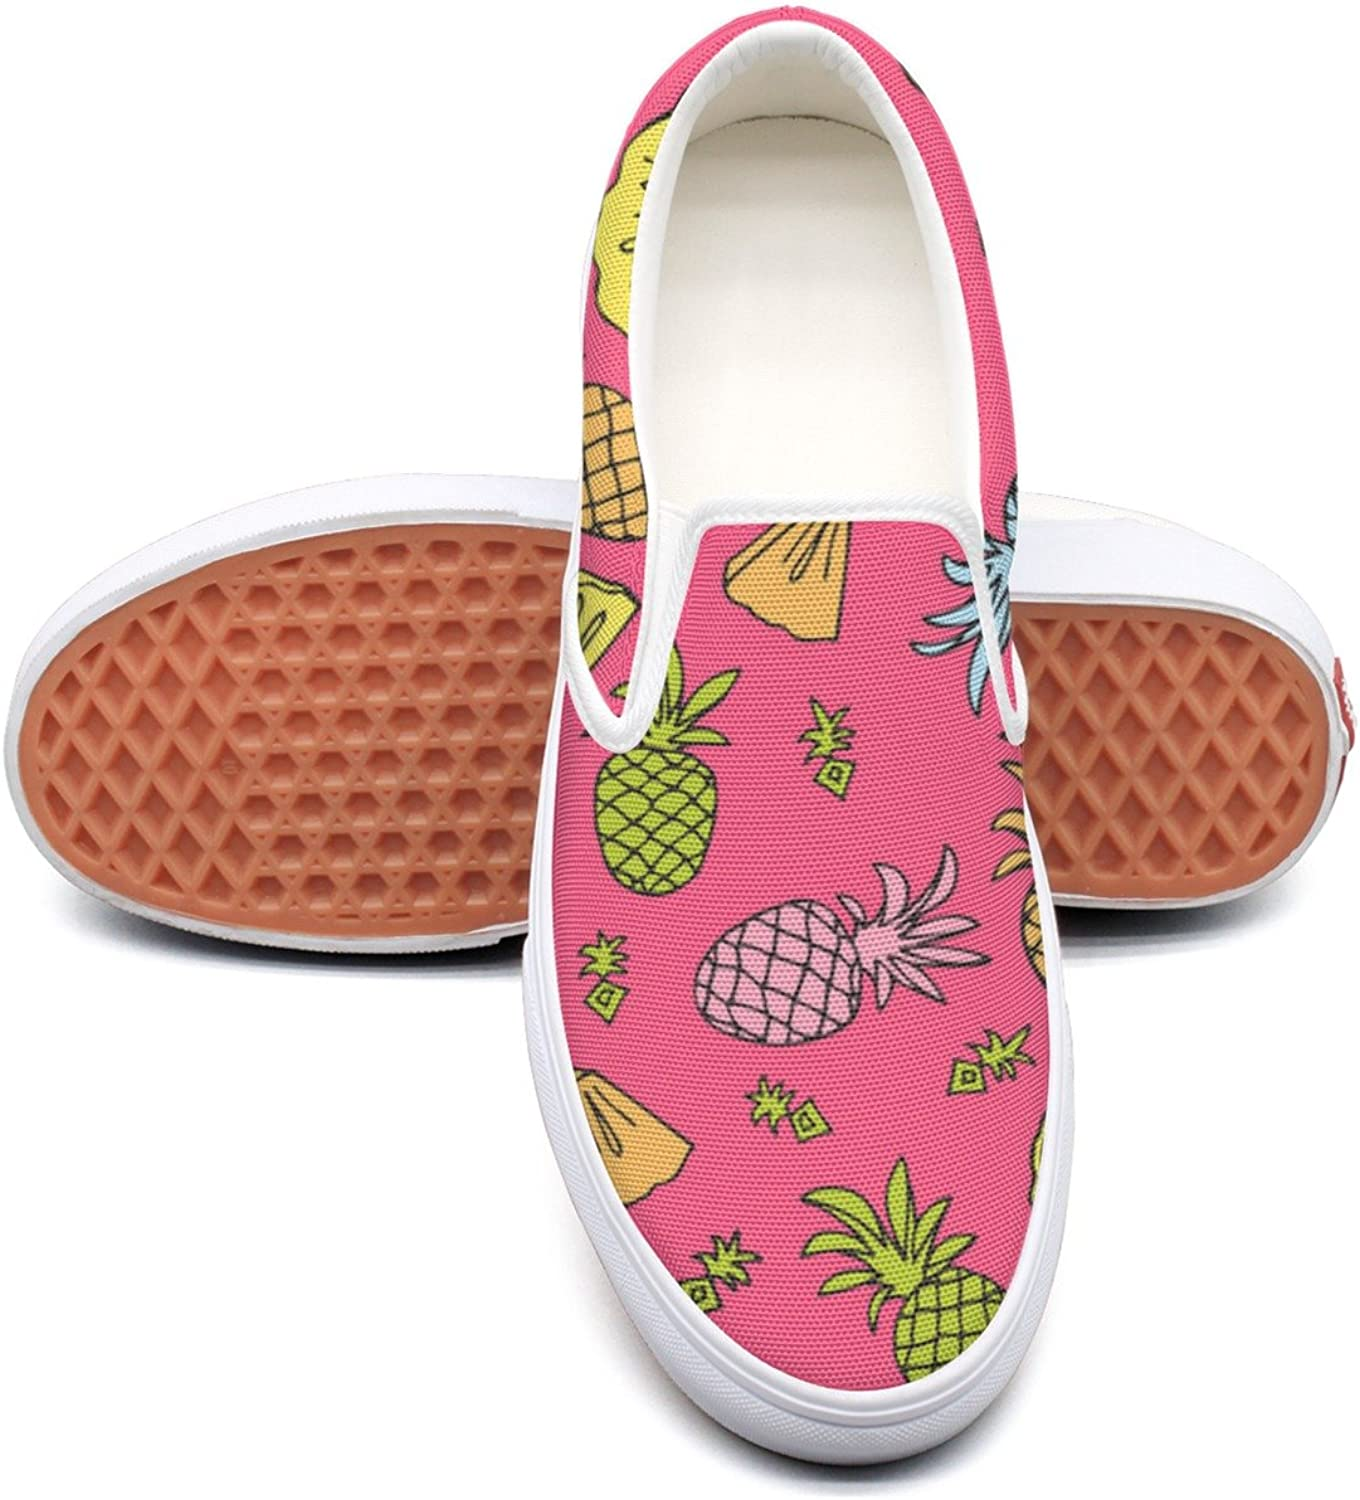 Hjkggd fgfds Casual Tropical Fruit Pineapple Mix Women's Canvas shoes